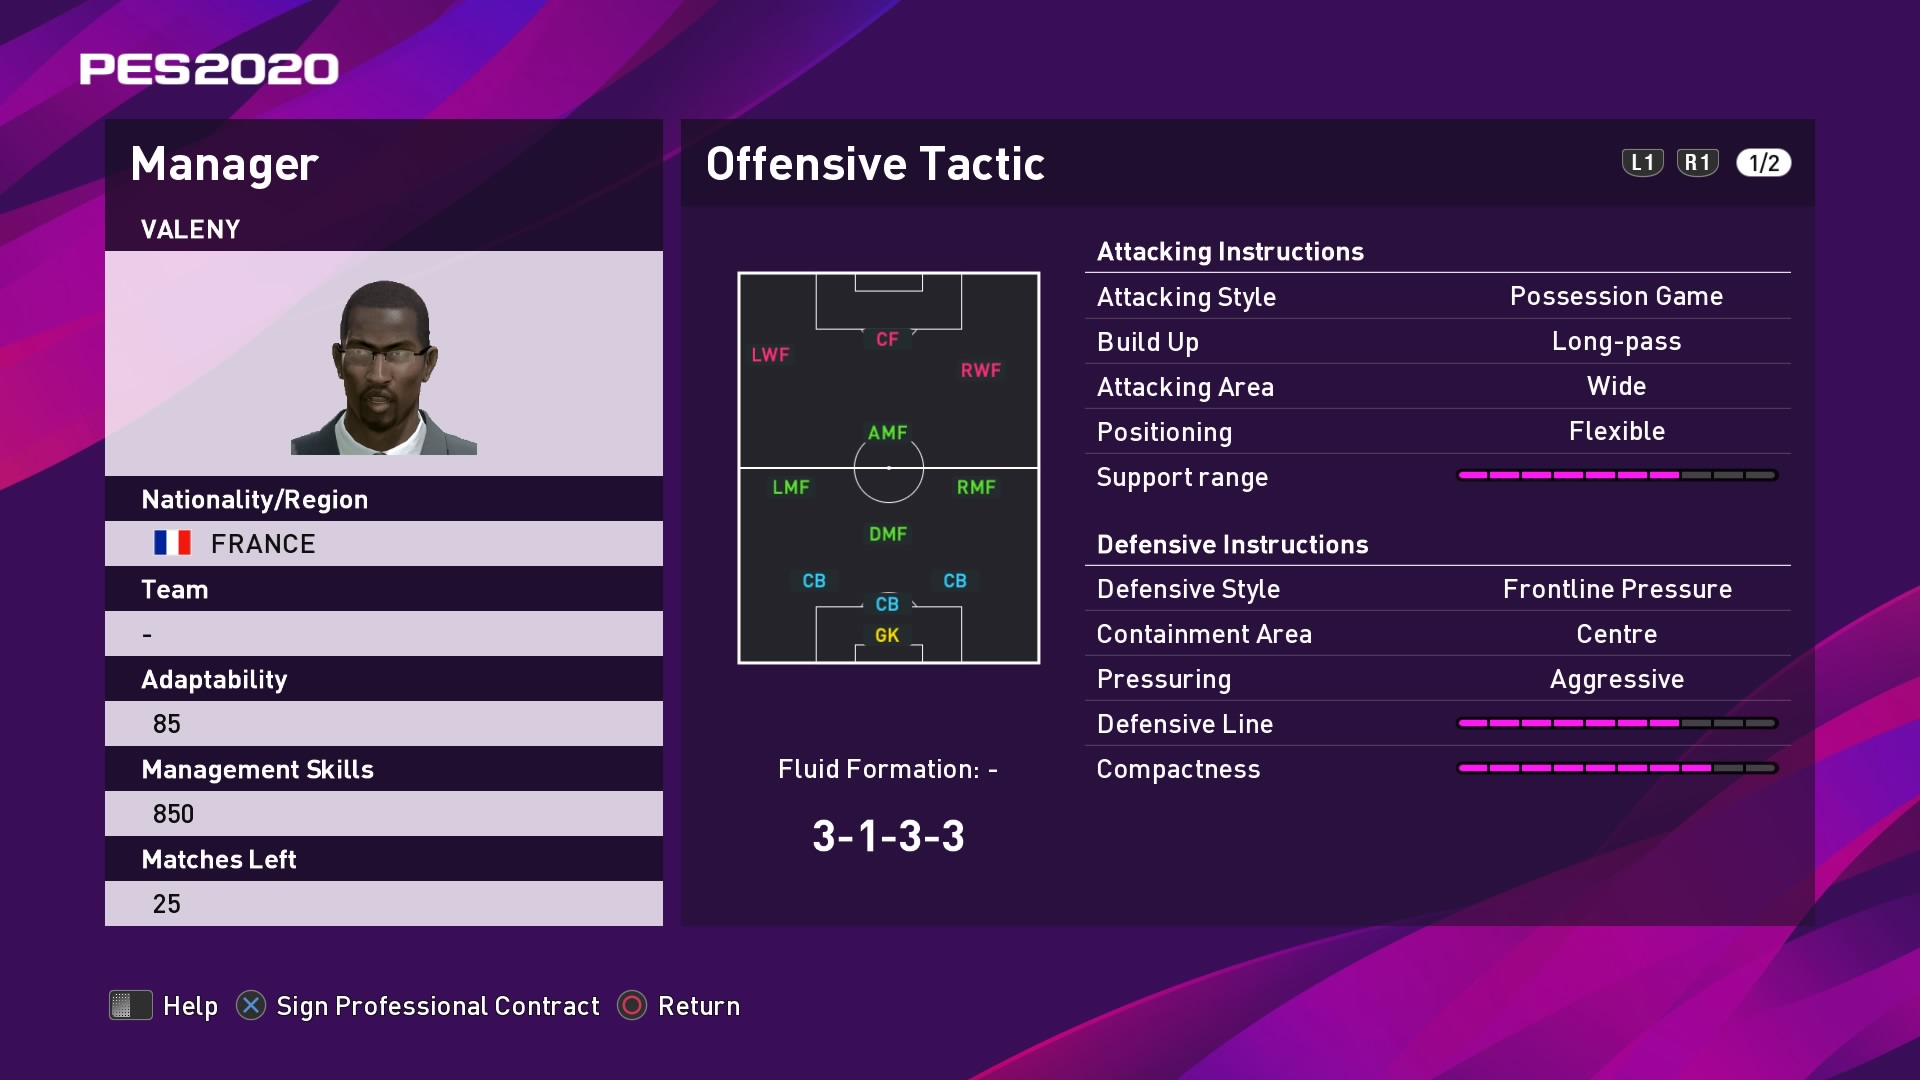 Valeny Offensive Tactic in PES 2020 myClub